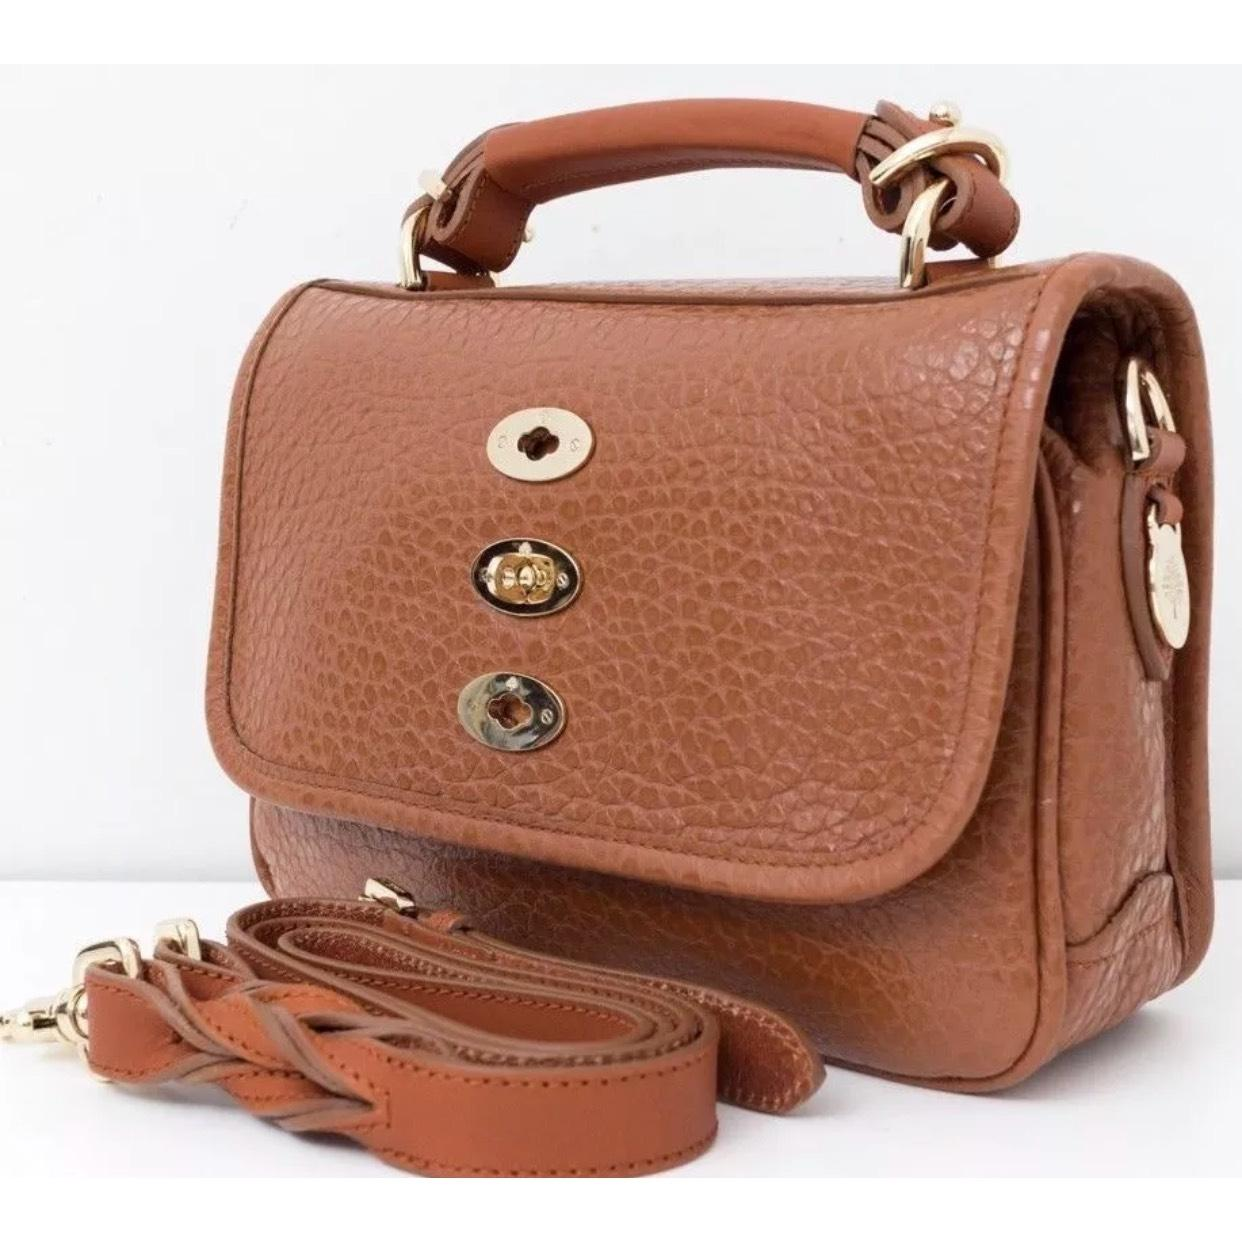 66676786b8 ... where to buy body bag mulberry shiny handbag oak cross new grain bryn  w0w8pu 89d6e ad854